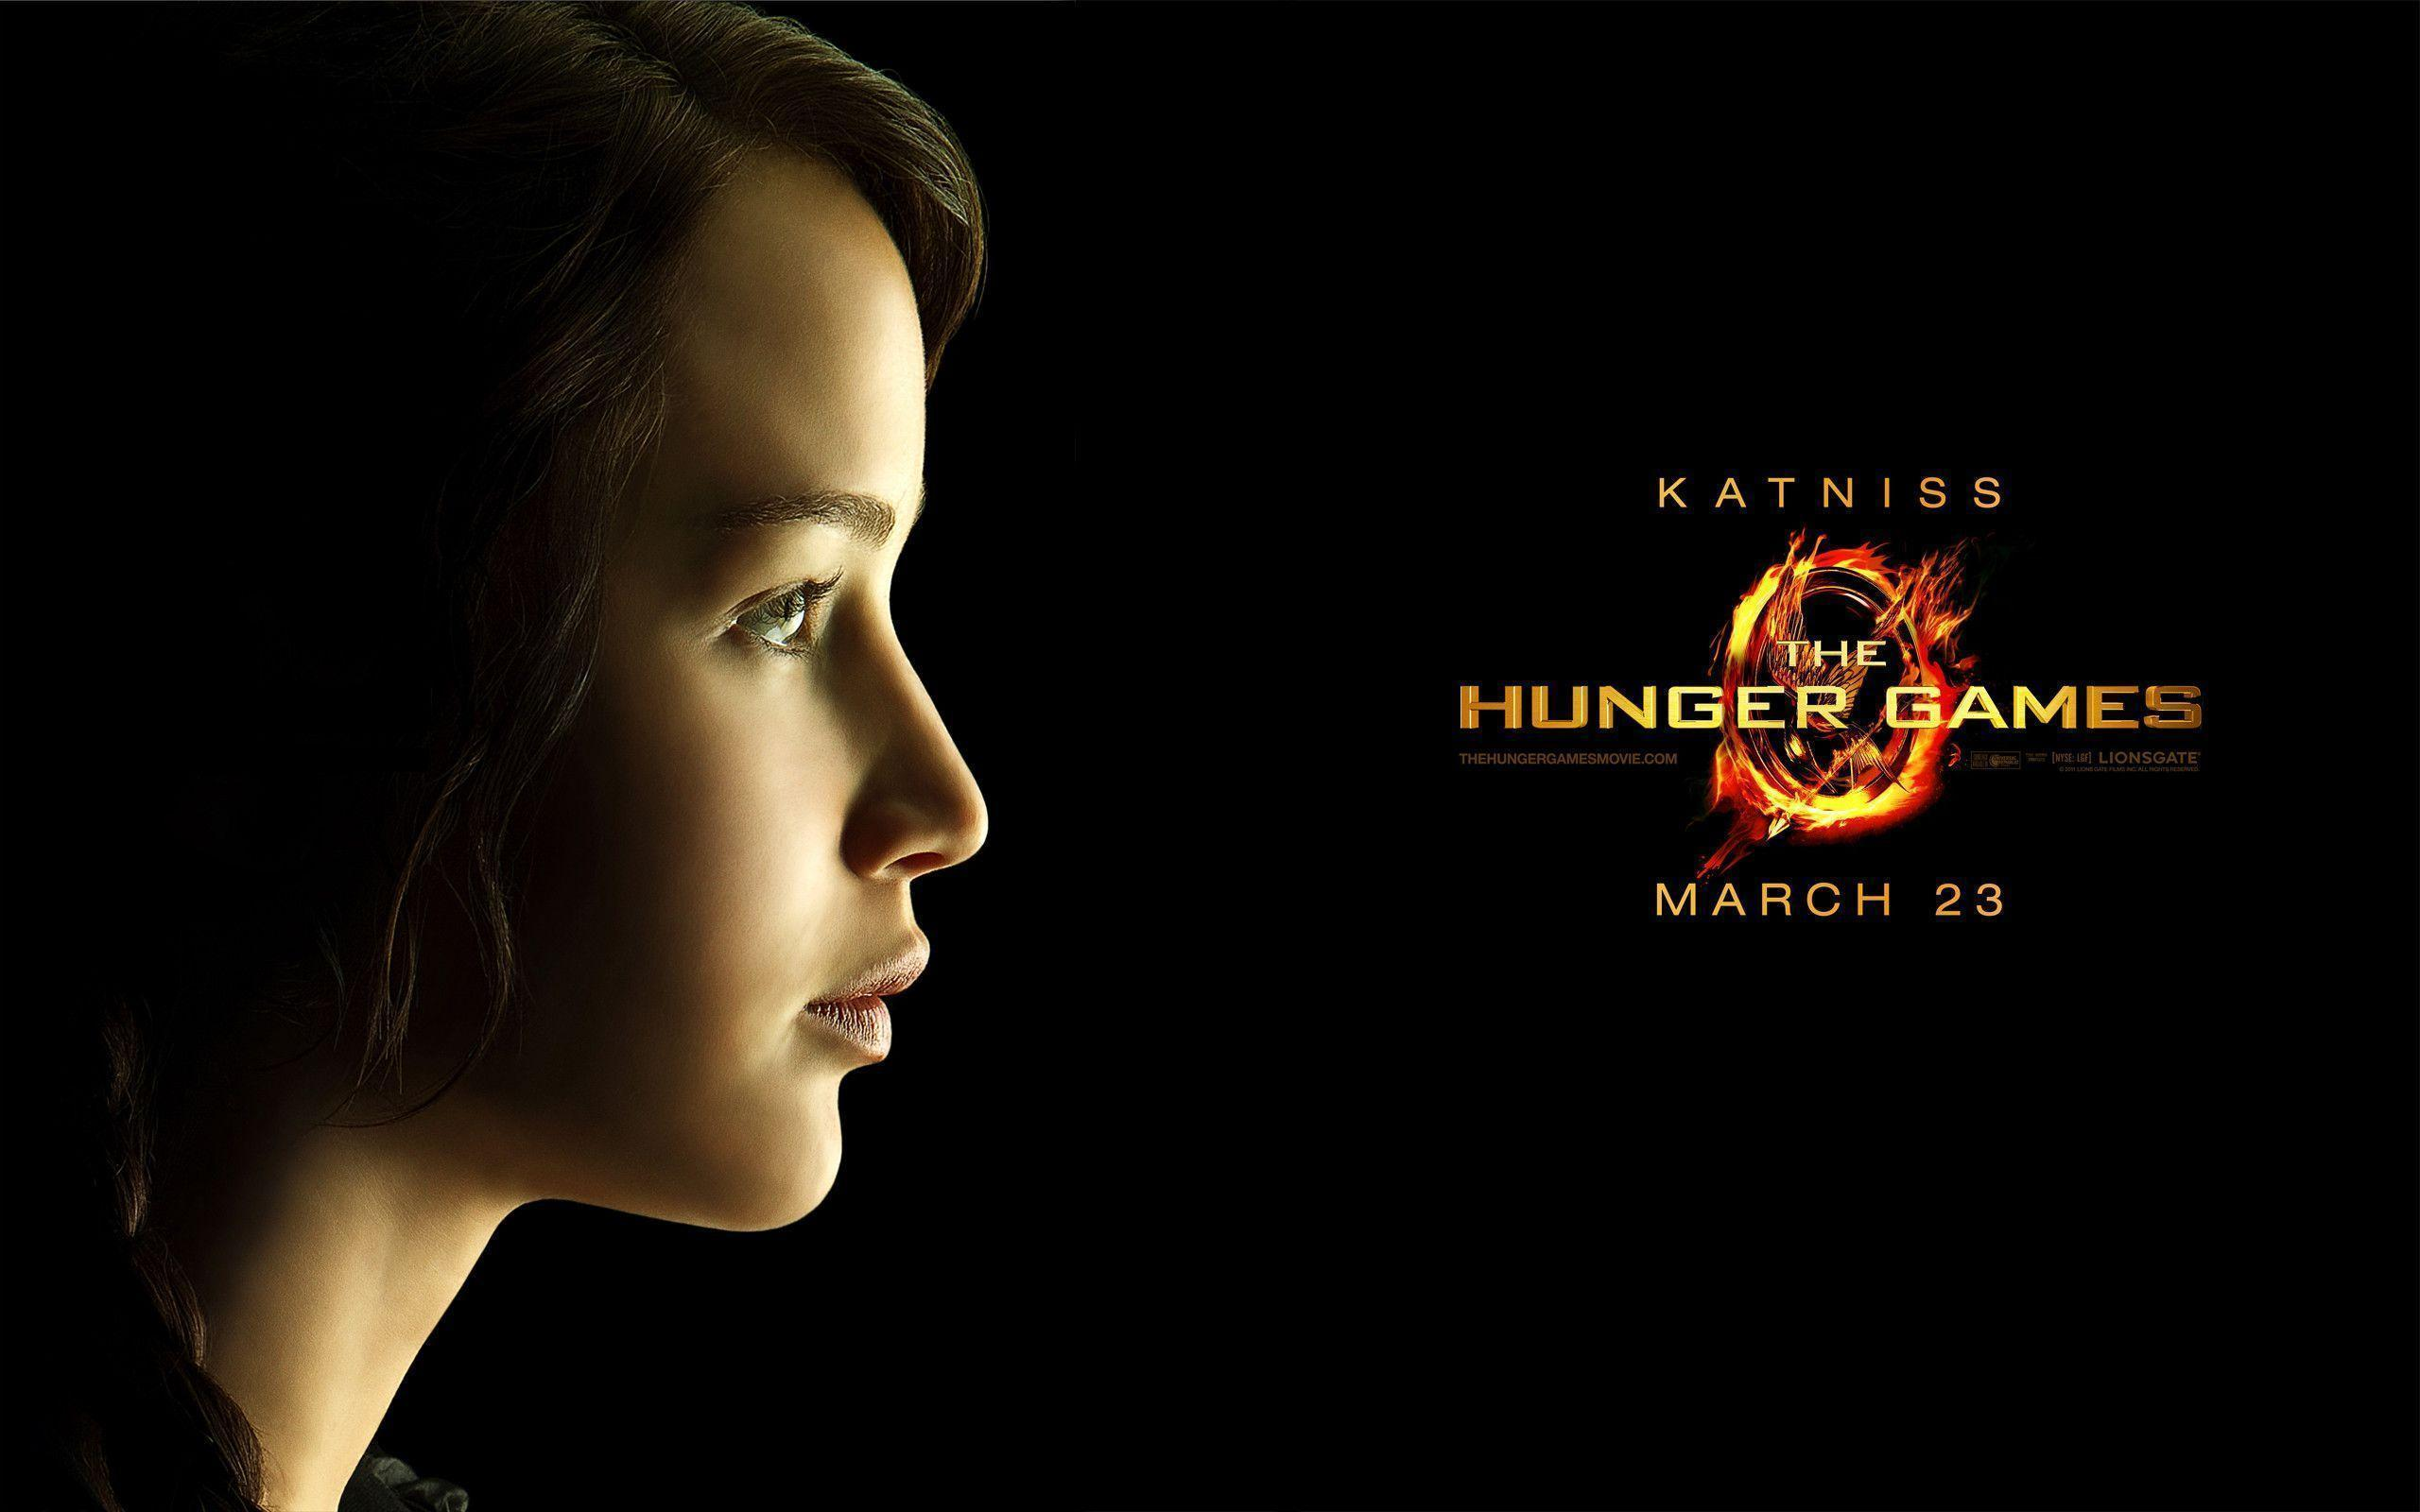 The Hunger Games Katniss Wallpapers Hq Pictures 13 HD Wallpapers